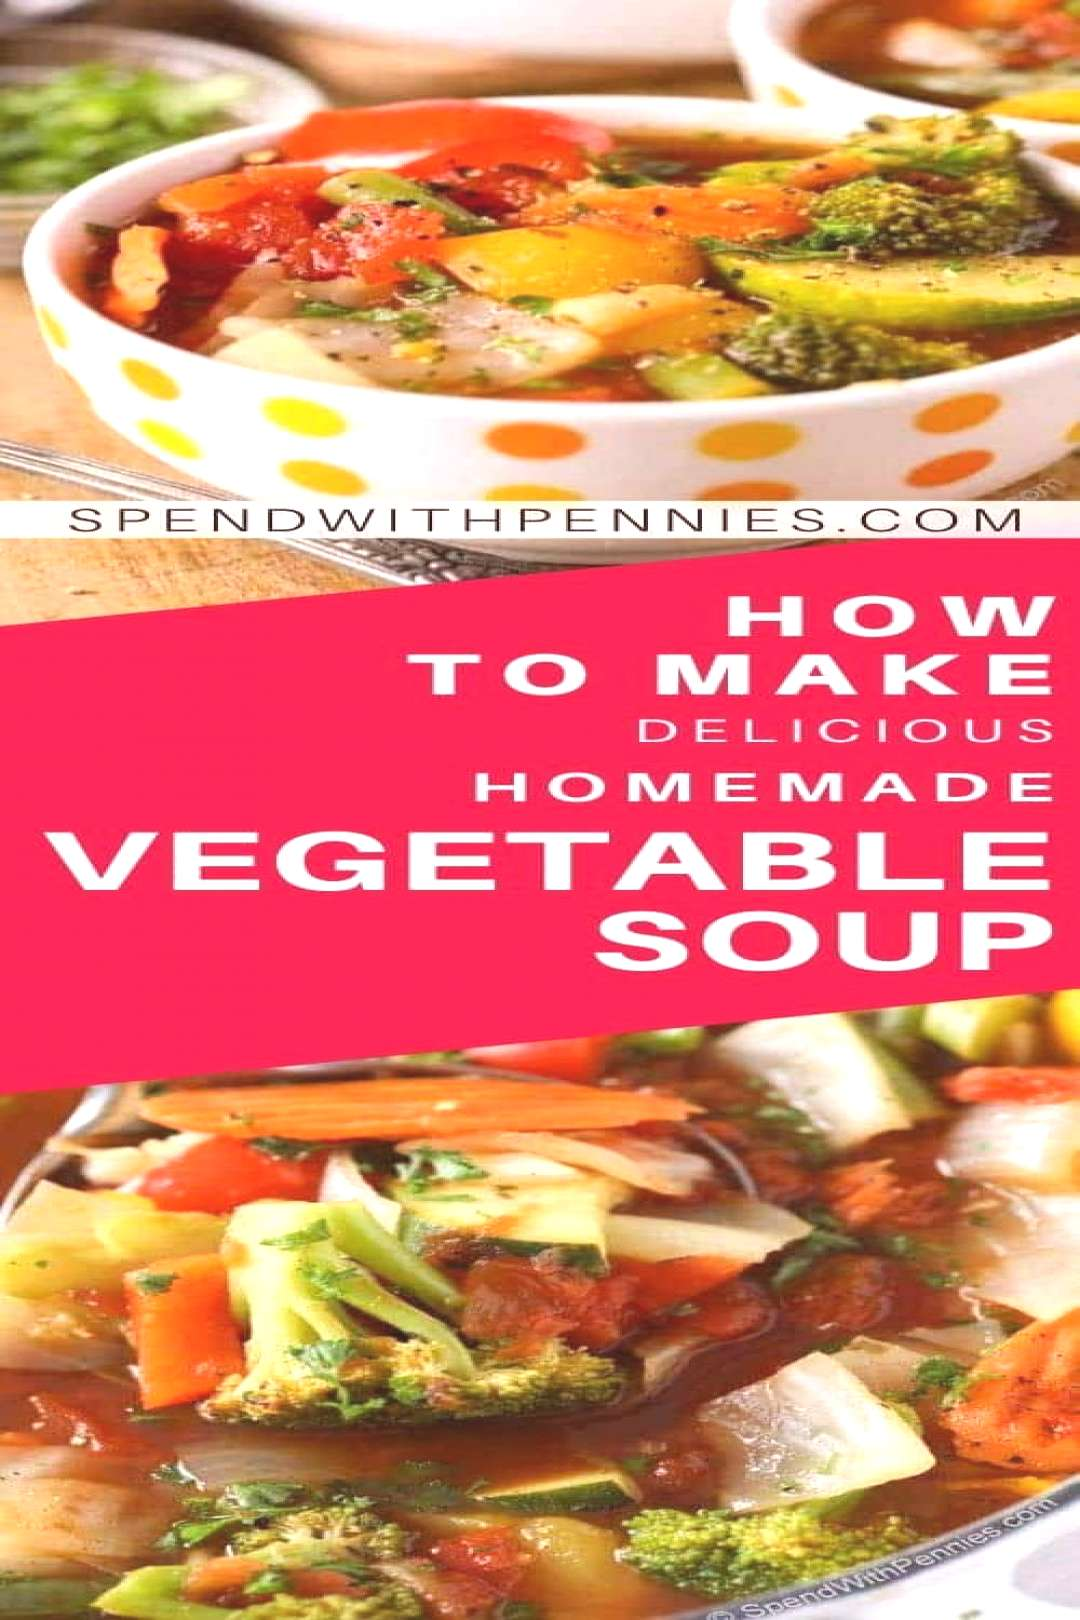 Weight Loss Vegetable Soup with Amazing Flavor - Spend With Pennies , Weight Loss Vegetable Soup